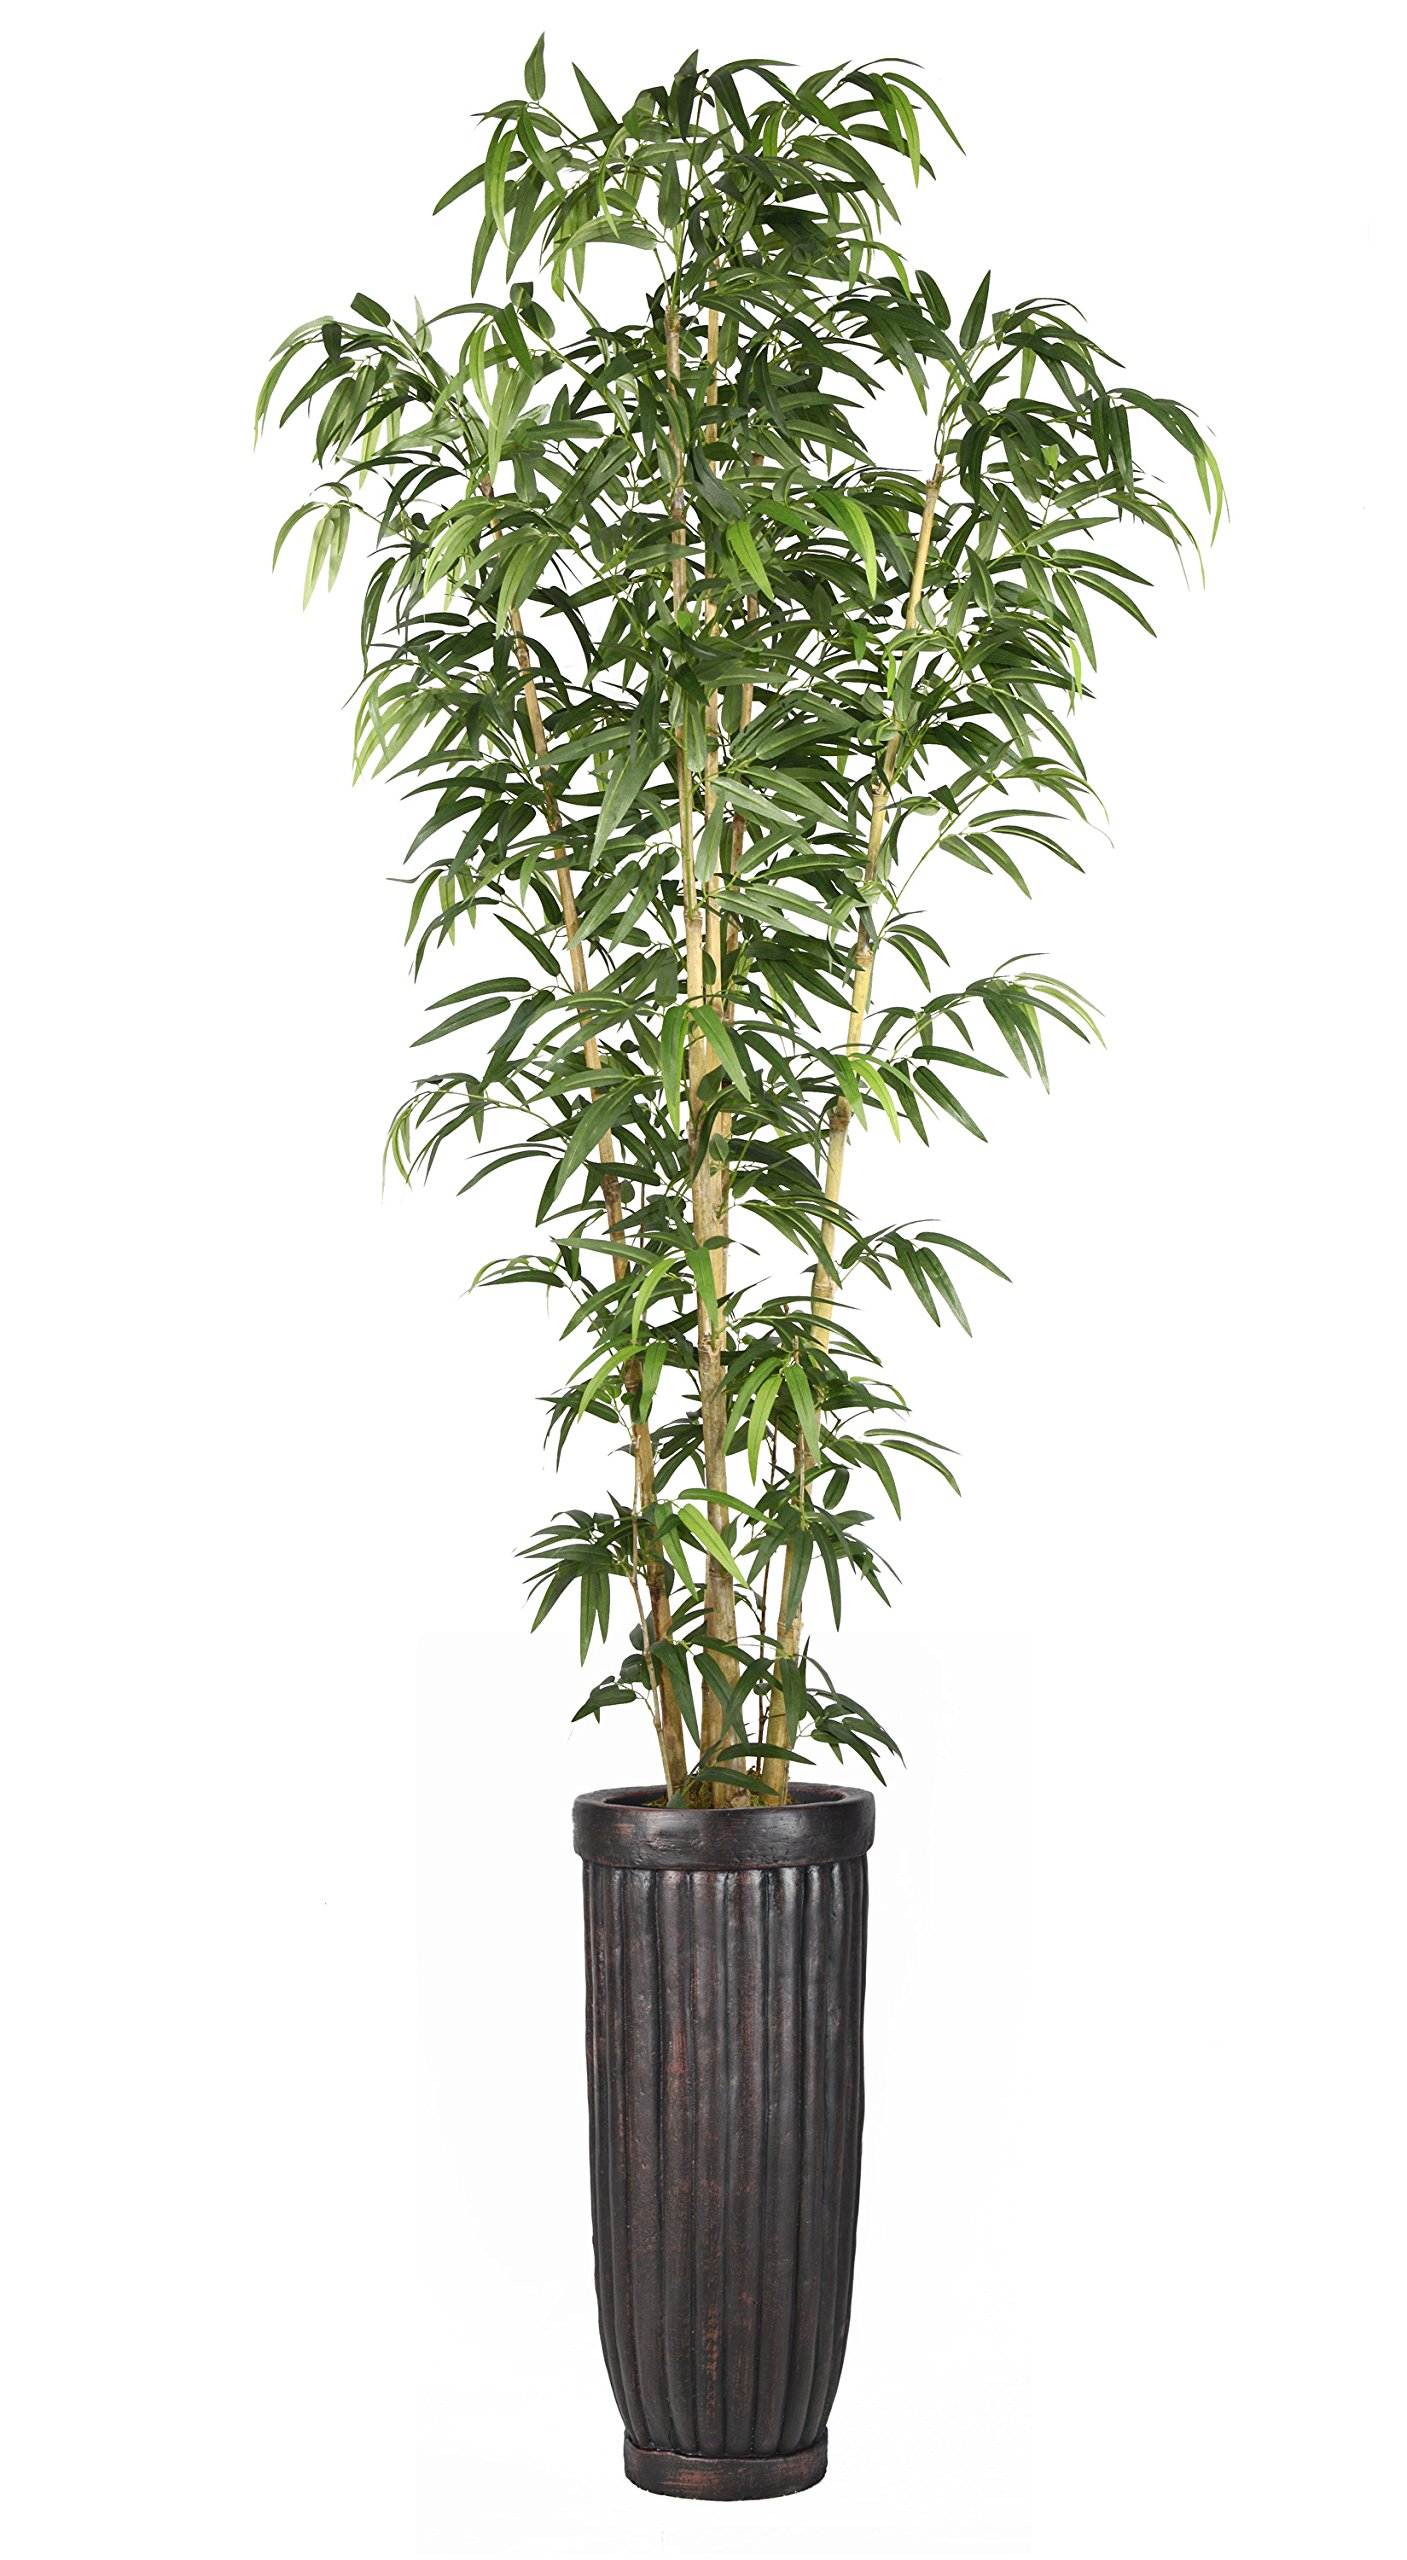 Vintage Home VHX116214 93'' Bamboo Tree in Natural Poles in Planter Tree